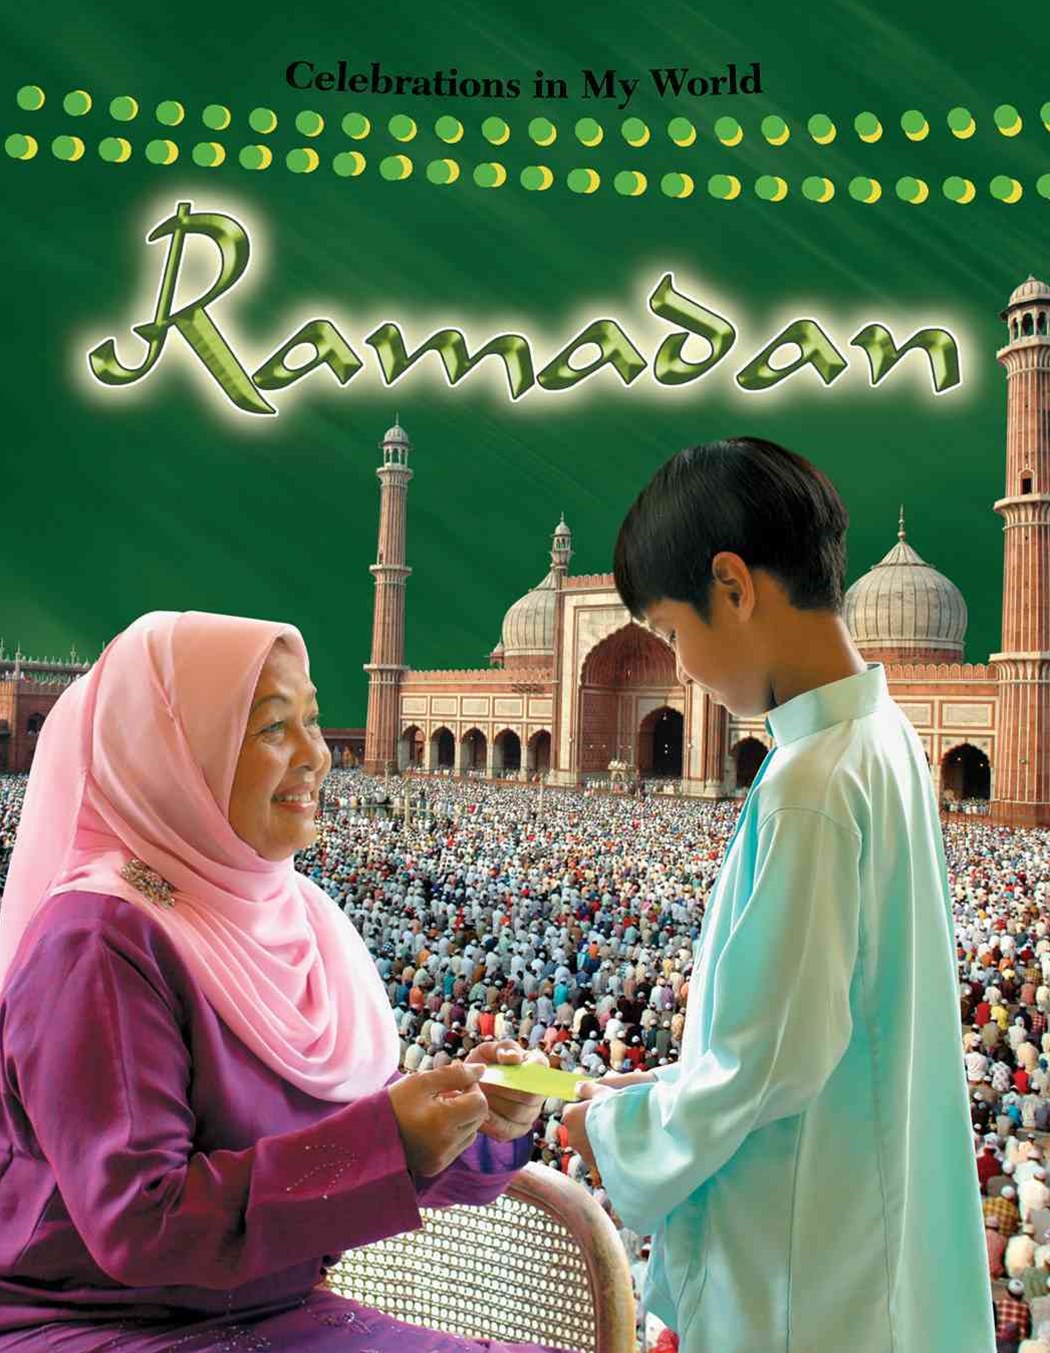 Ramadan - Celebrations in my World